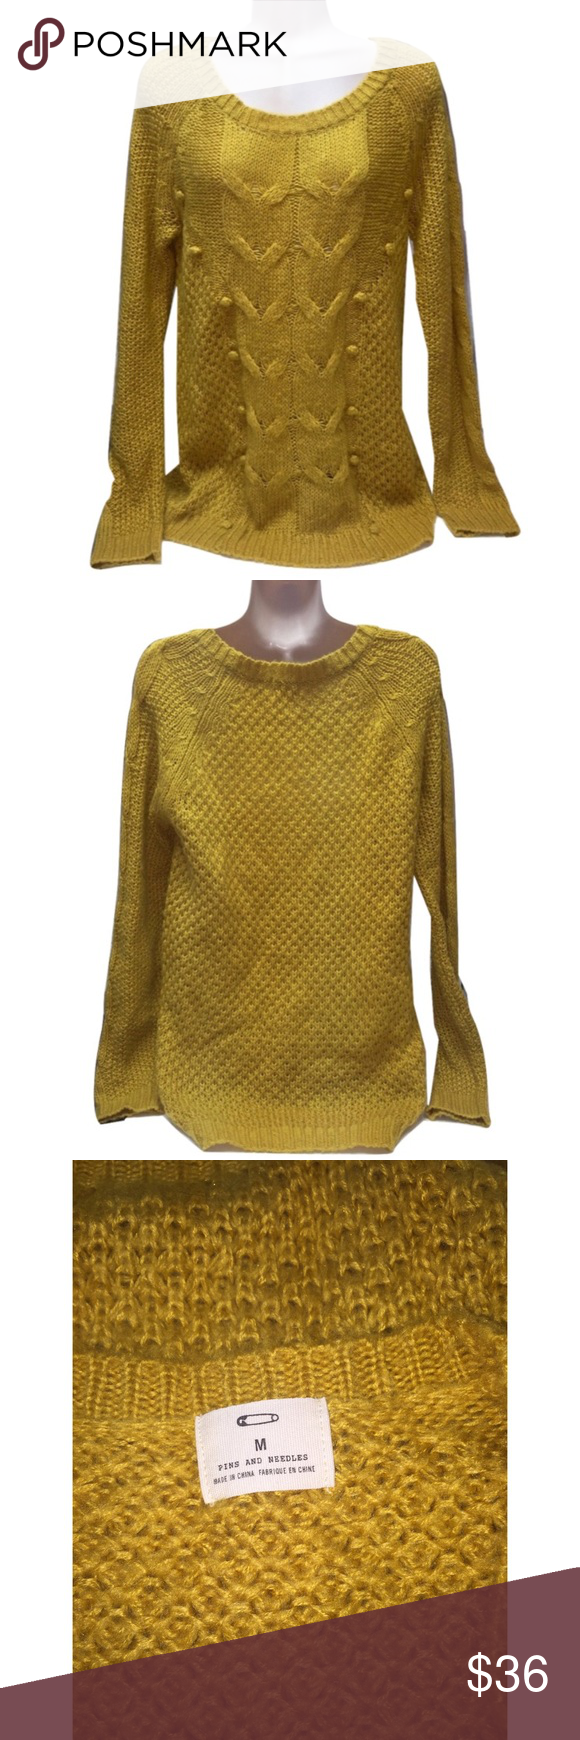 """Pins and Needles Urban Outfitters M Knit Sweater 🔸Pins and Needles Urban Outfitters M Knit Sweater NWOT🔸Size M🔸Mustard yellow color🔸Knitted Pom Pom front🔸Bust 36-40""""-stretchy🔸Sleeve length 27 1/2""""🔸Length 28""""🔸100% acrylic🔸NWOT Urban Outfitters Sweaters"""